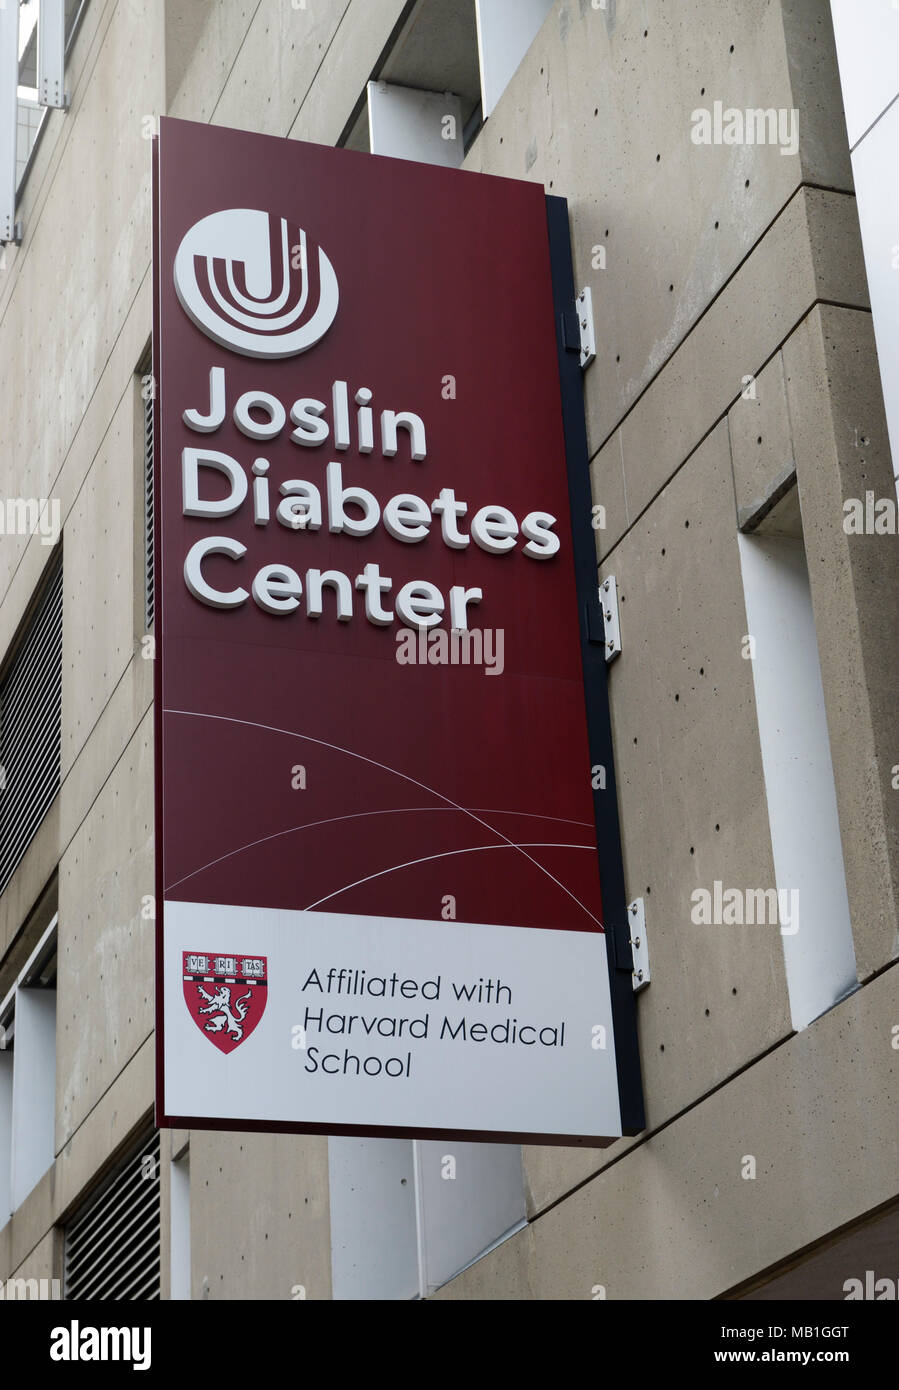 Joslin Diabetes Center, Boston MA. La recherche et le traitement du diabète hôpital affilié à la Harvard Medical School Photo Stock